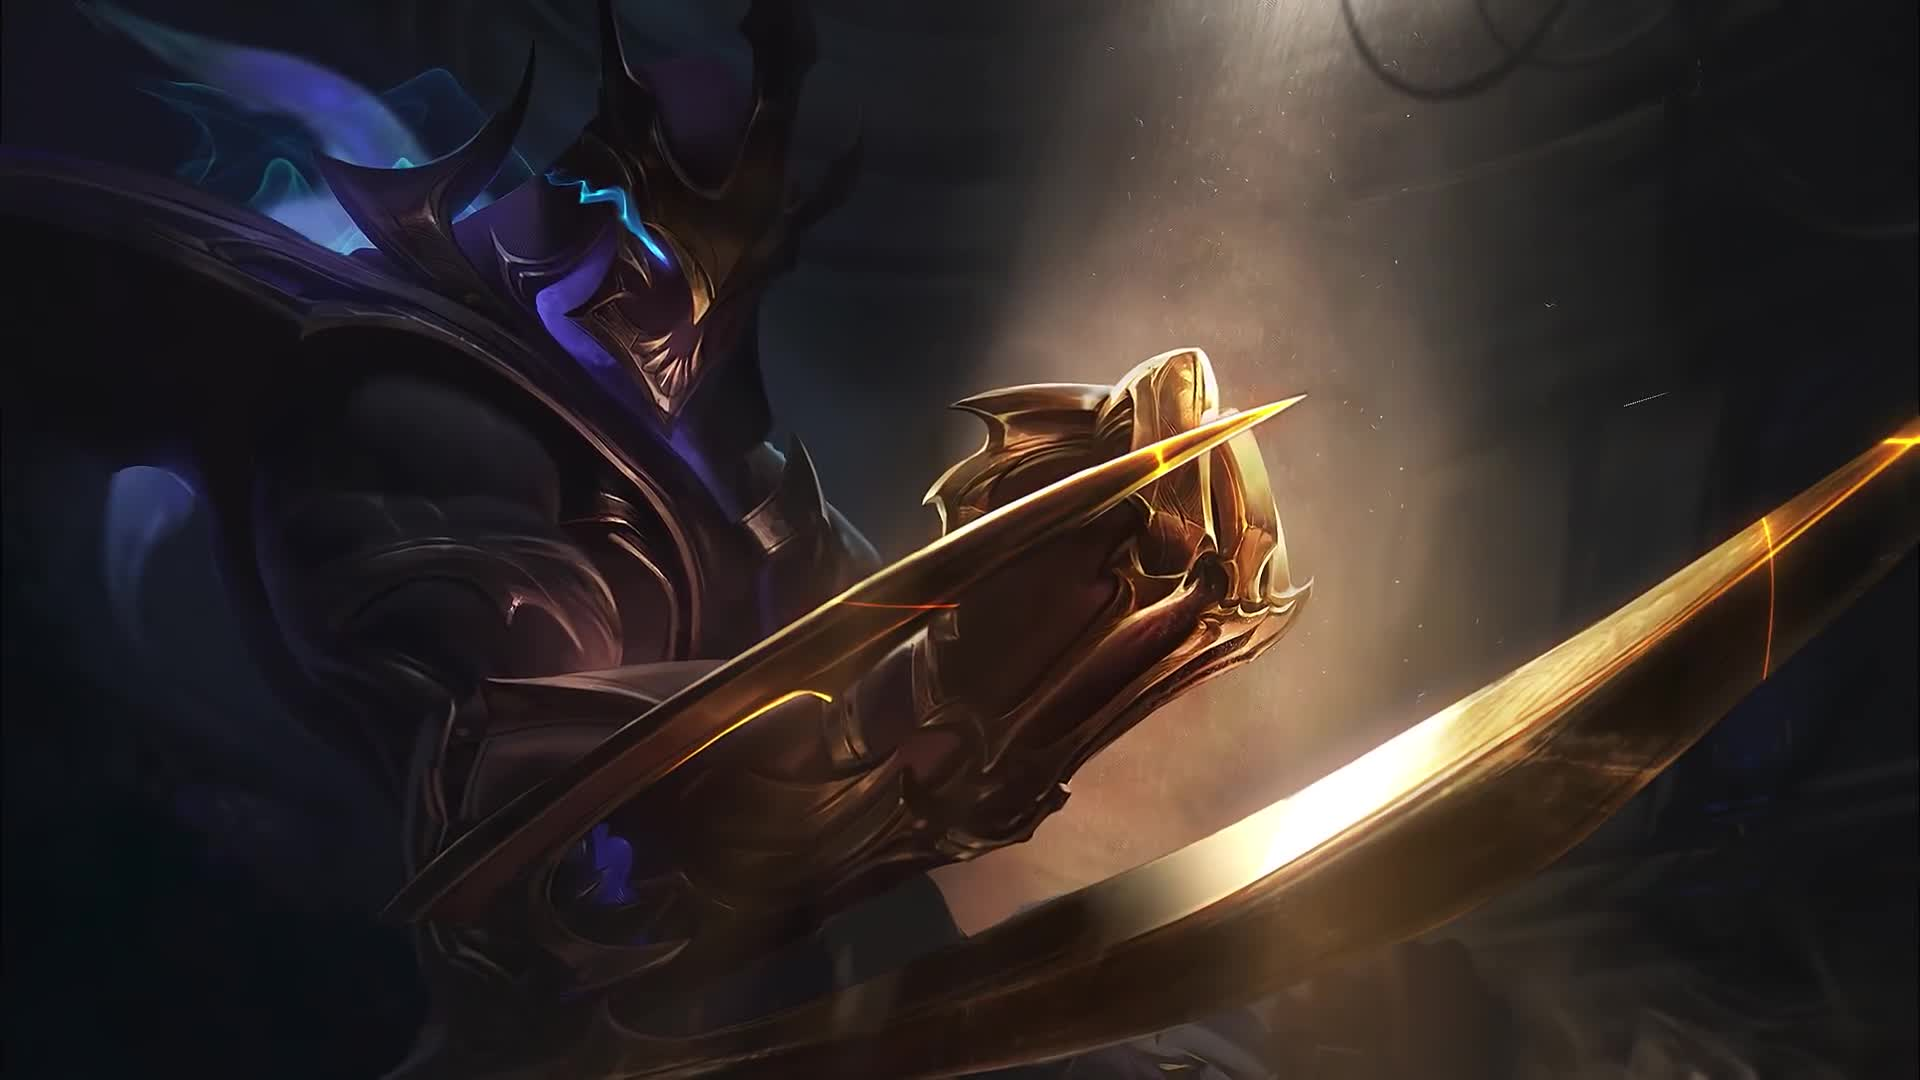 Galaxy Slayer Zed Wallpapers Wallpaper Cave